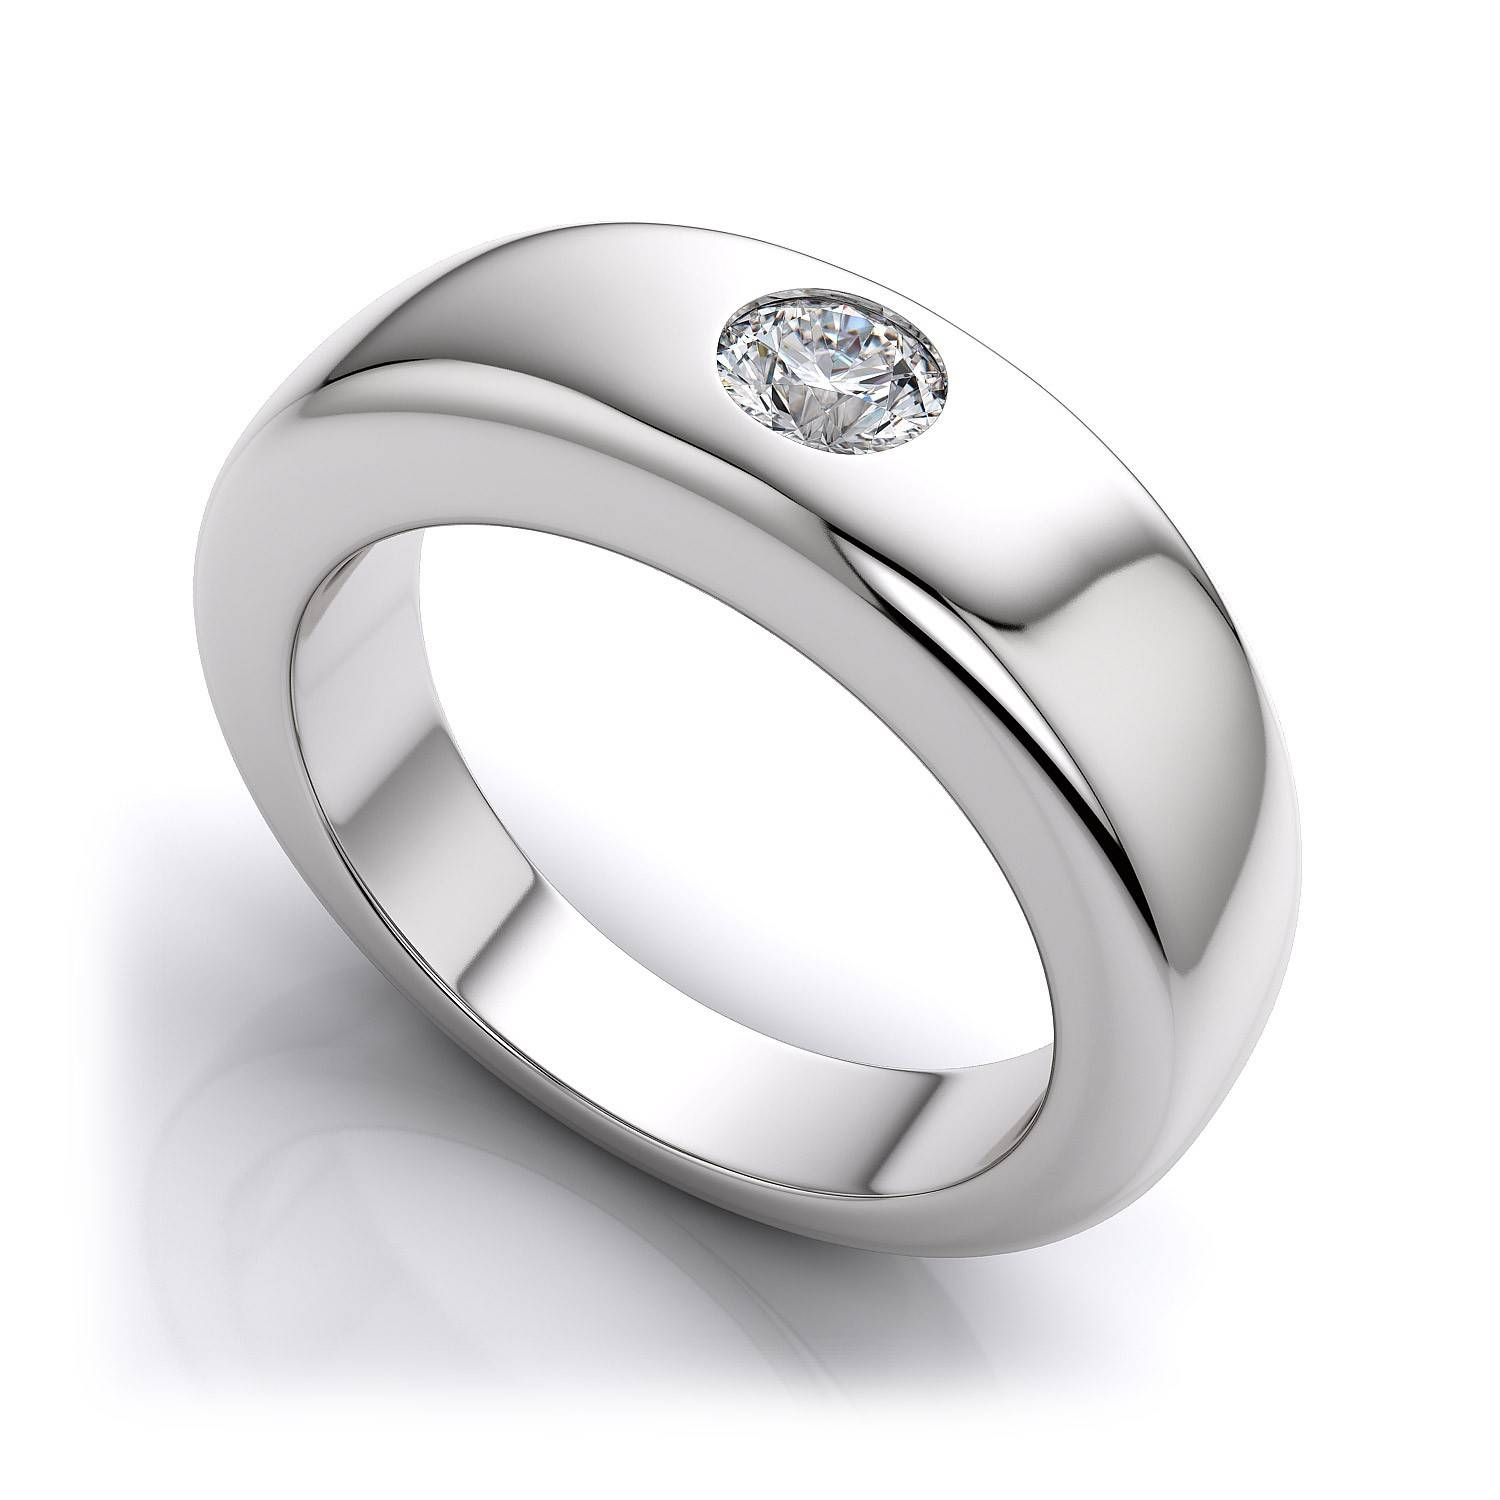 15 Best Collection of Platinum Mens Wedding Bands With